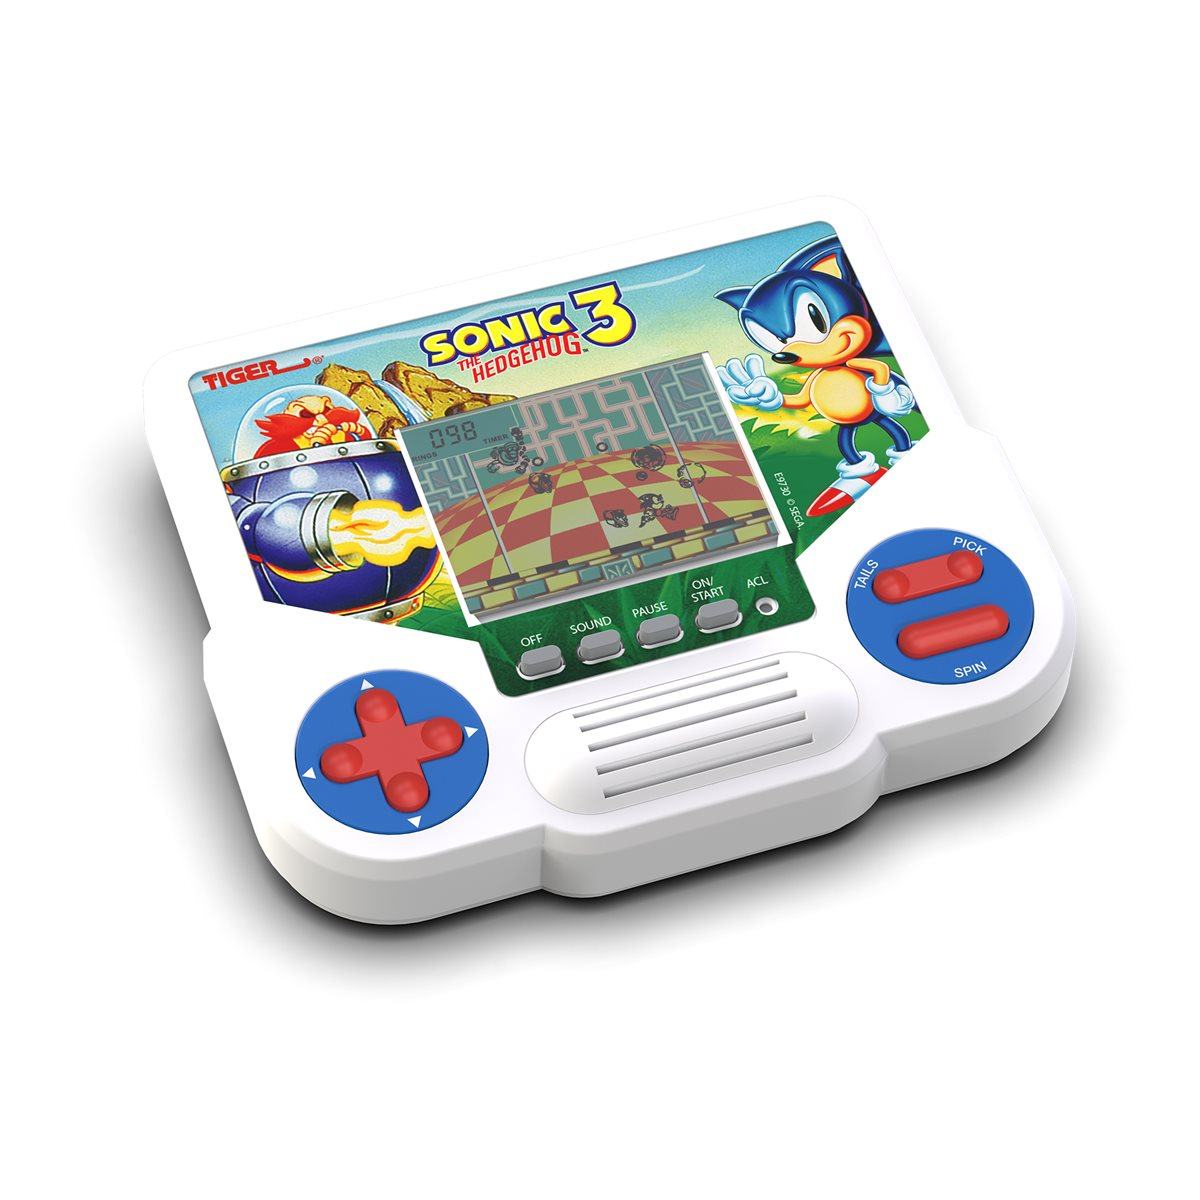 Tiger Electronics classic handheld LCD games are coming back this fall 19